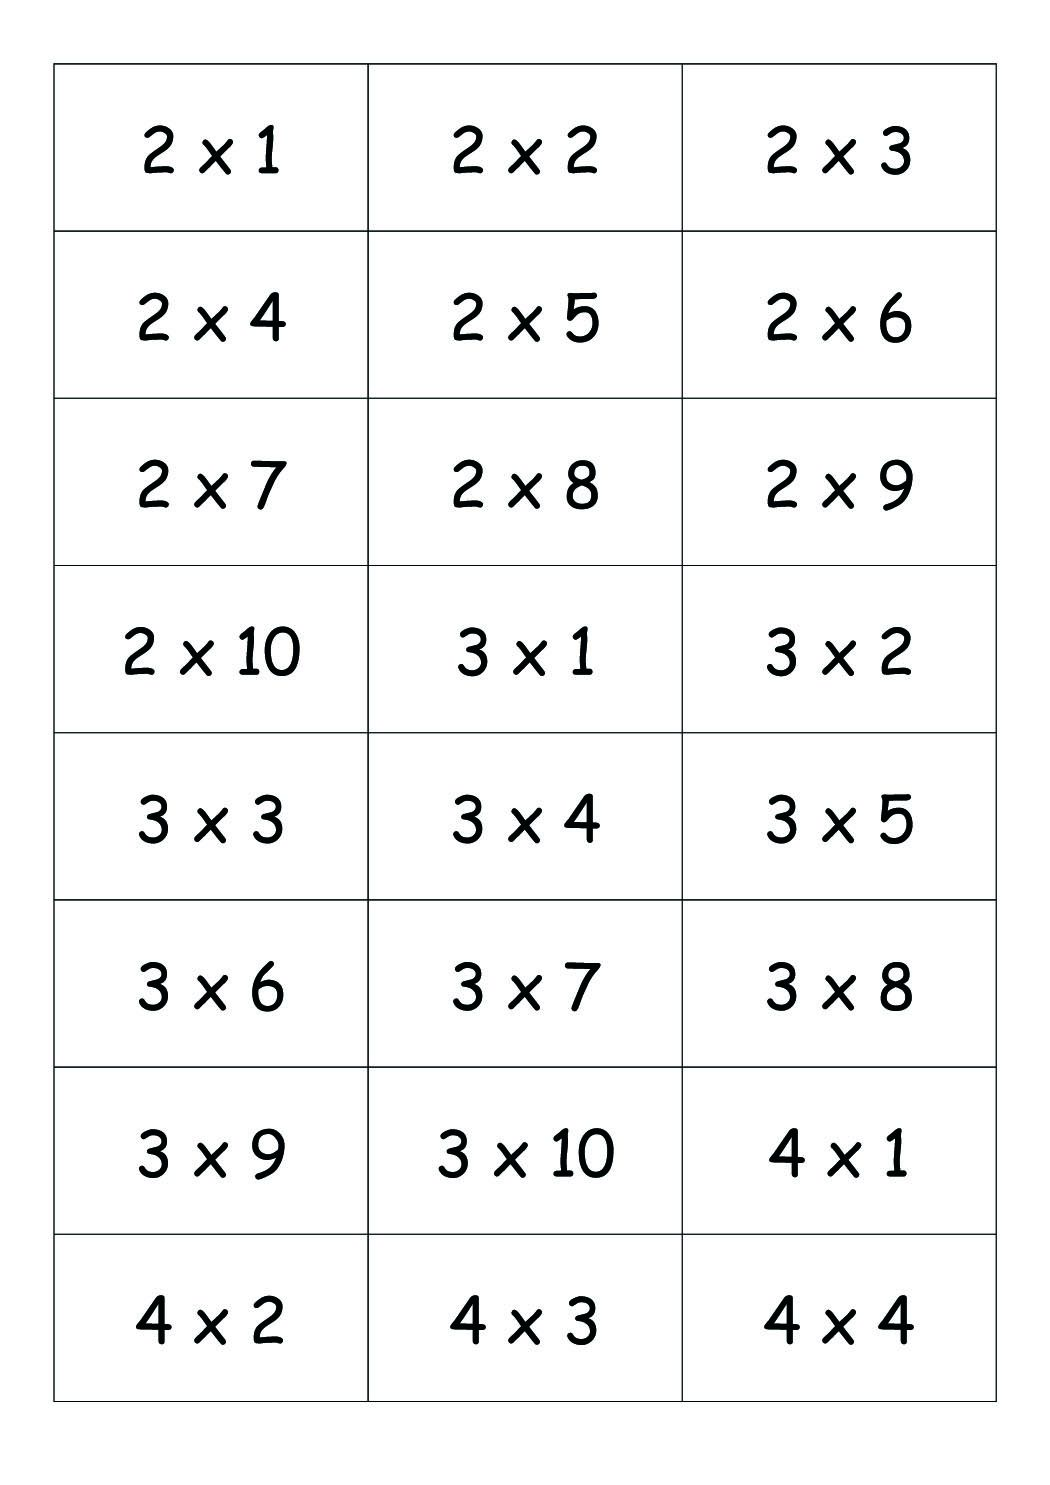 Exercice table de multiplication 2 3 4 5 jeu de for Jeu sur les multiplications